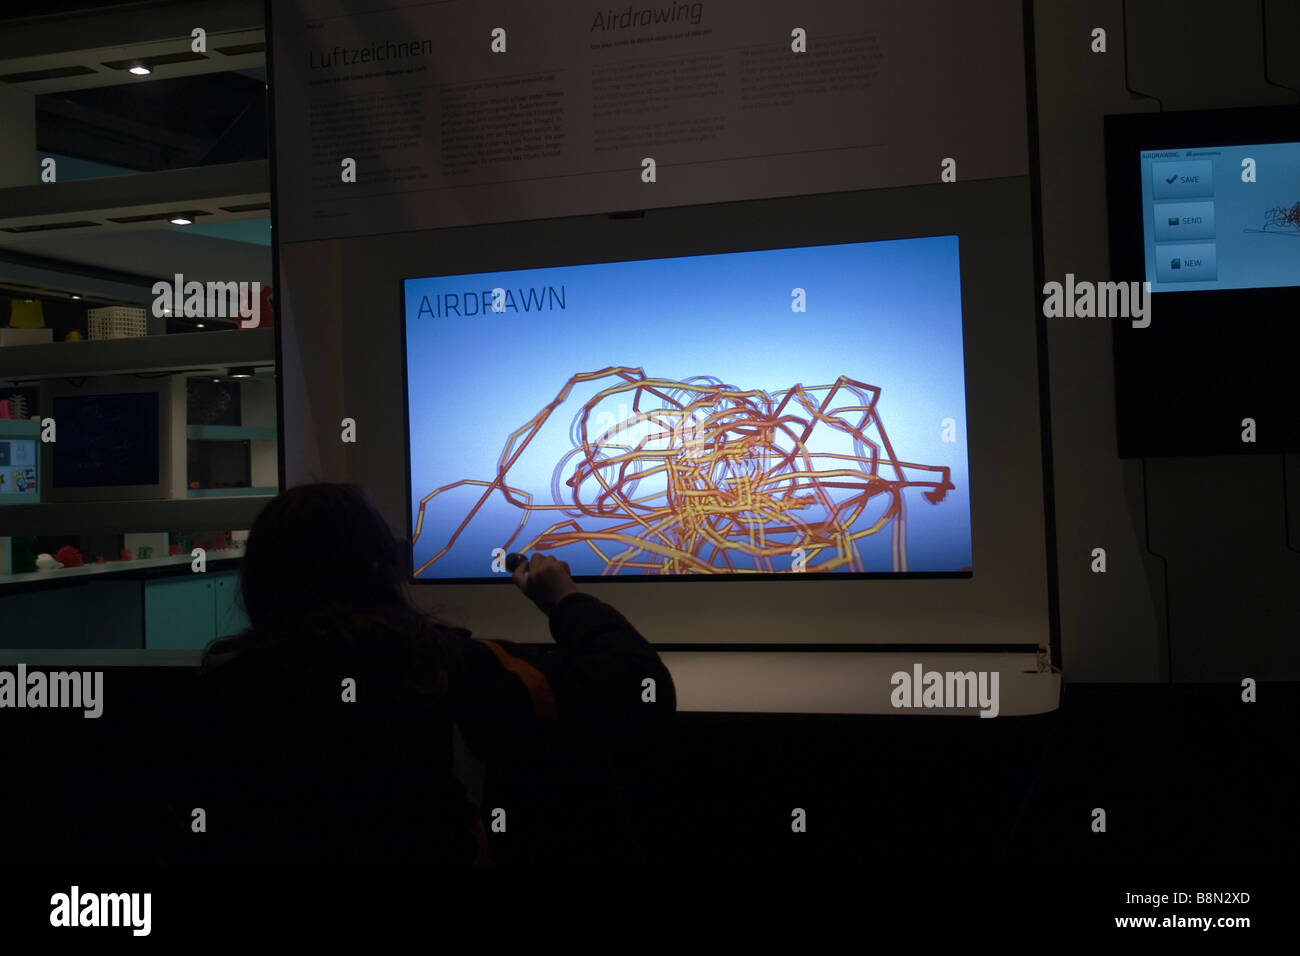 3D airdrawn with special spectacles - Ars Electronica Museum - Linz - Austria - Stock Image